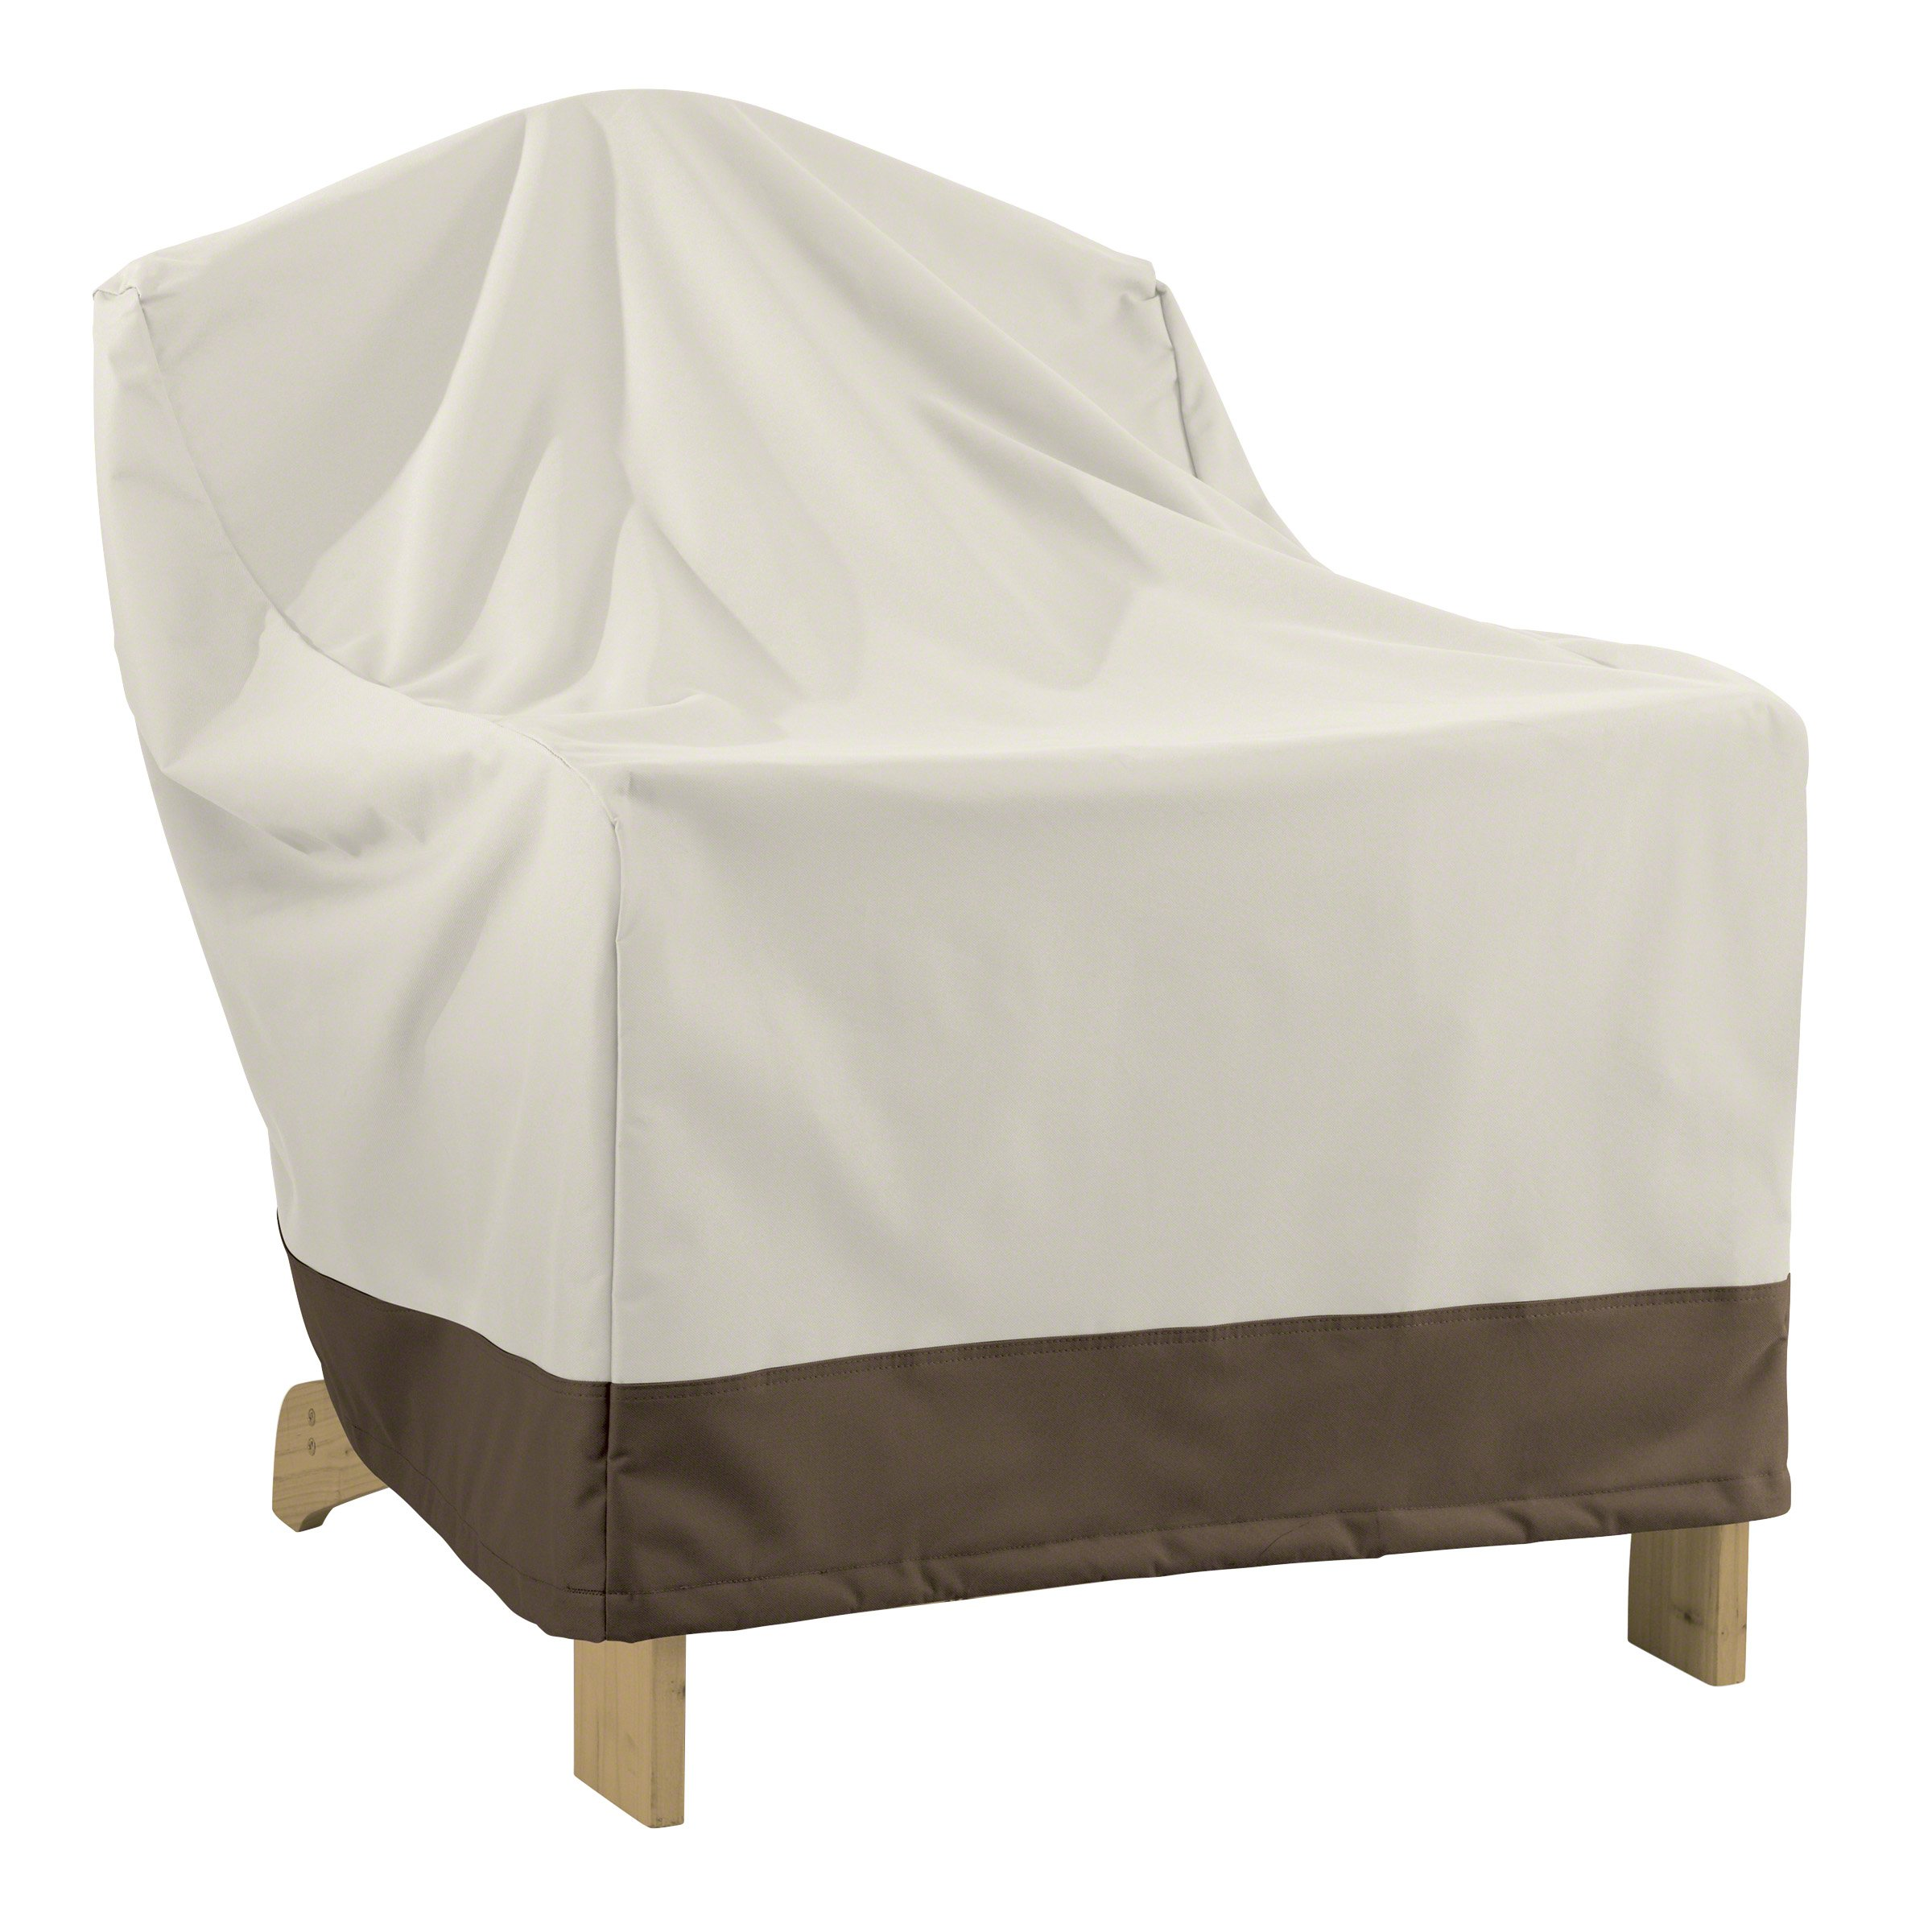 AmazonBasics Adirondack-Chair Outdoor Patio Furniture Cover by AmazonBasics